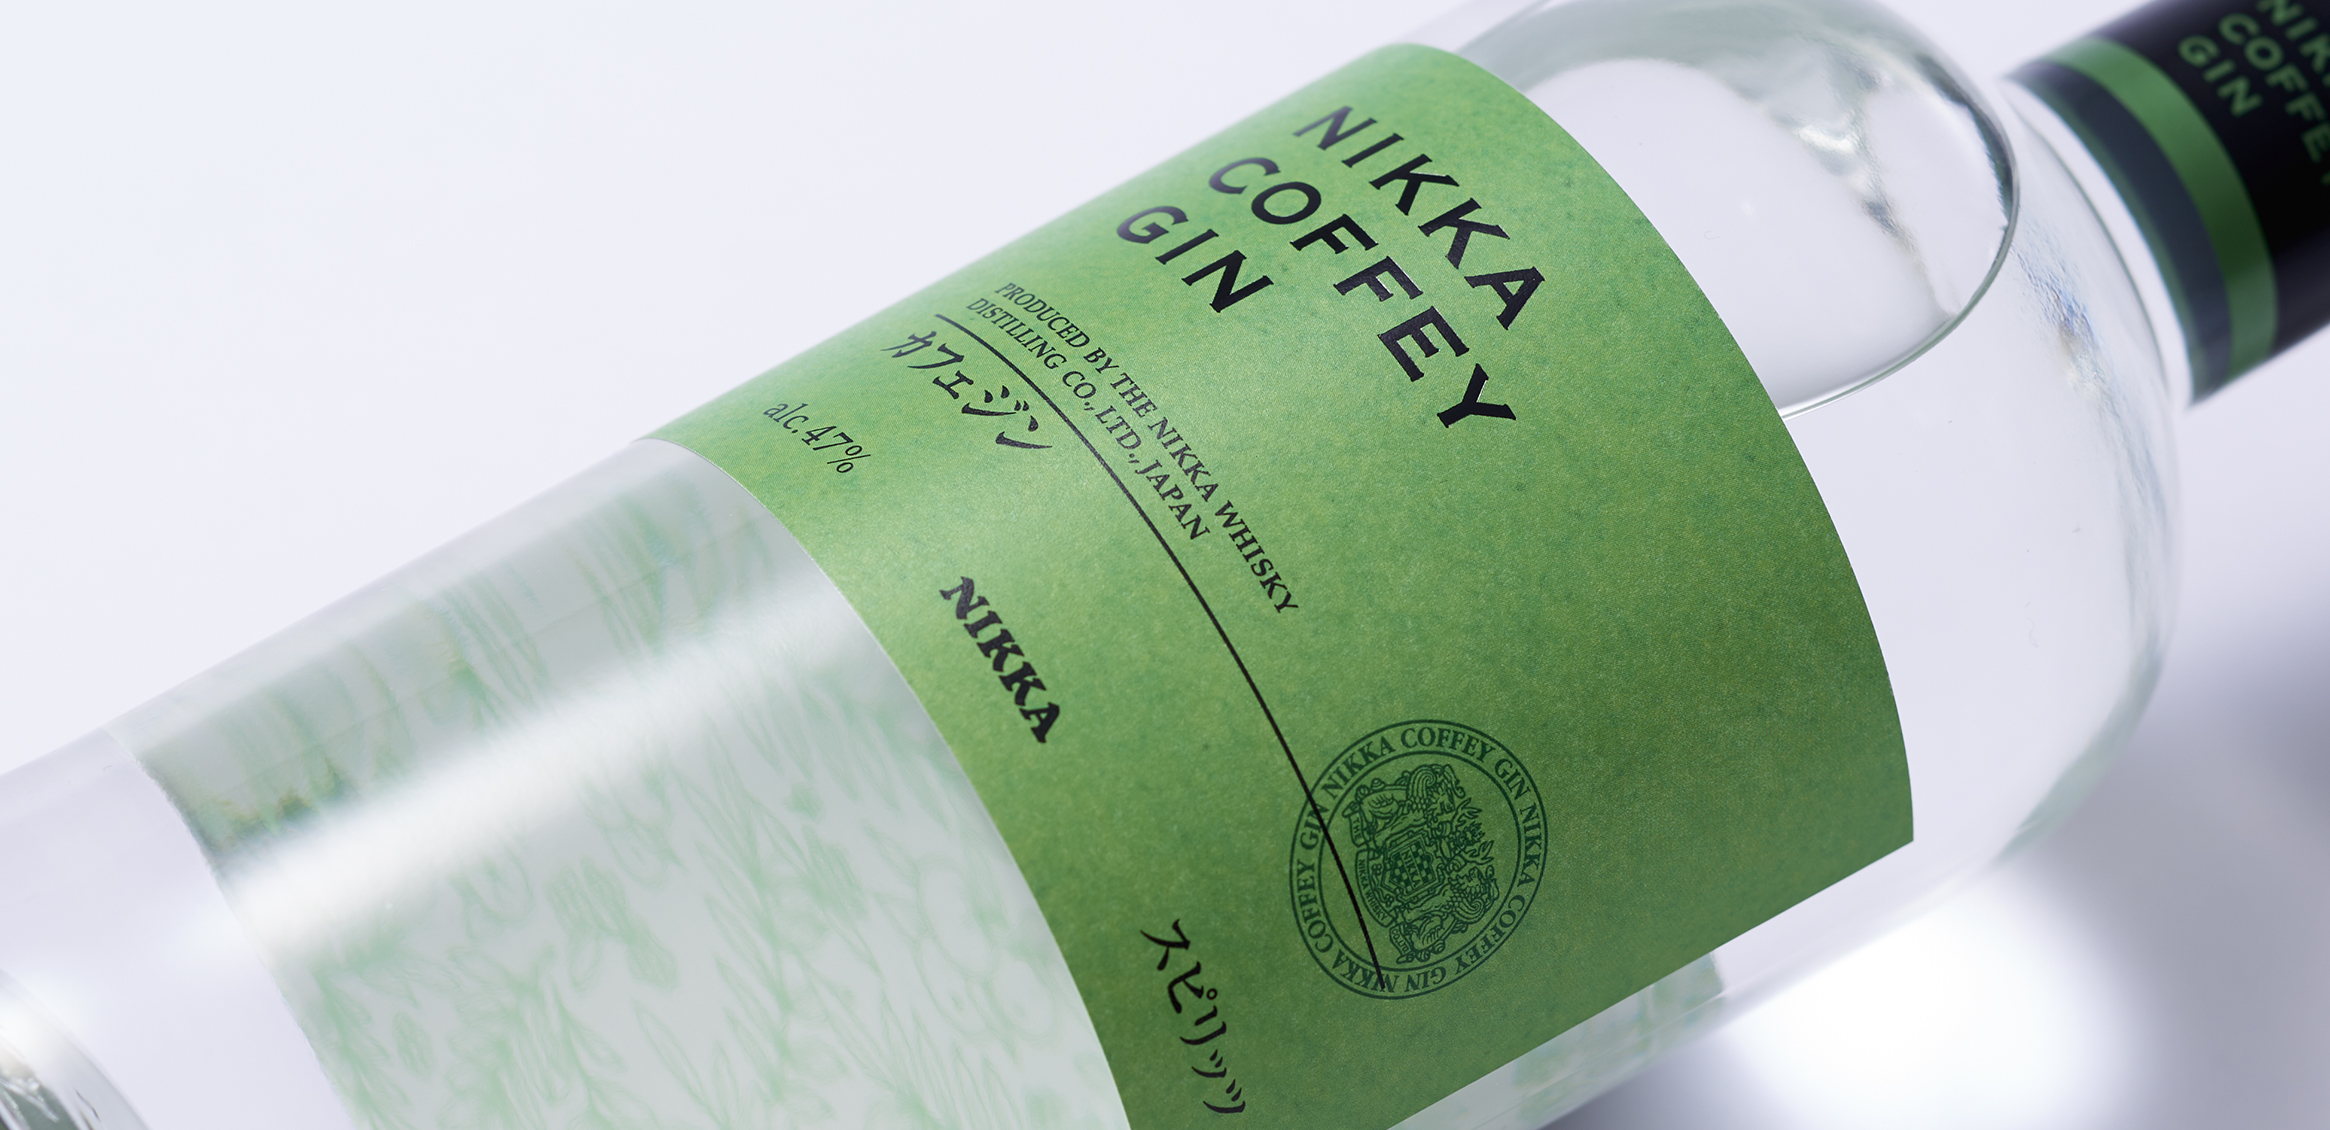 NIKKA COFFEY GIN / COFFEY VODKA3枚目